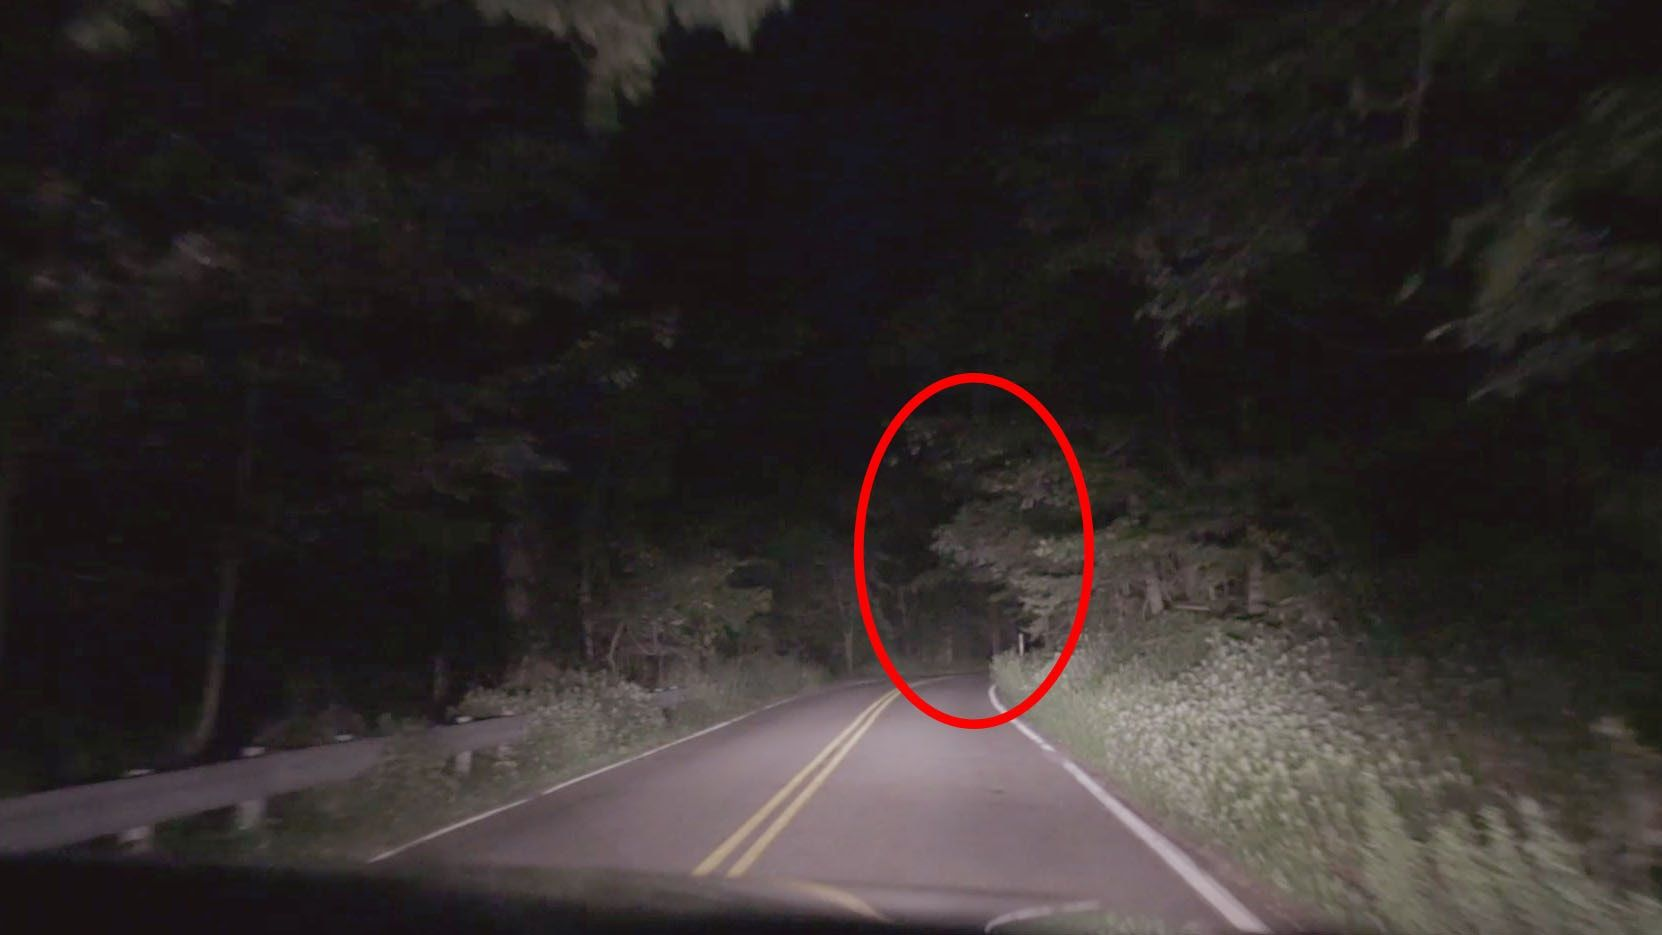 New jersey clinton road story